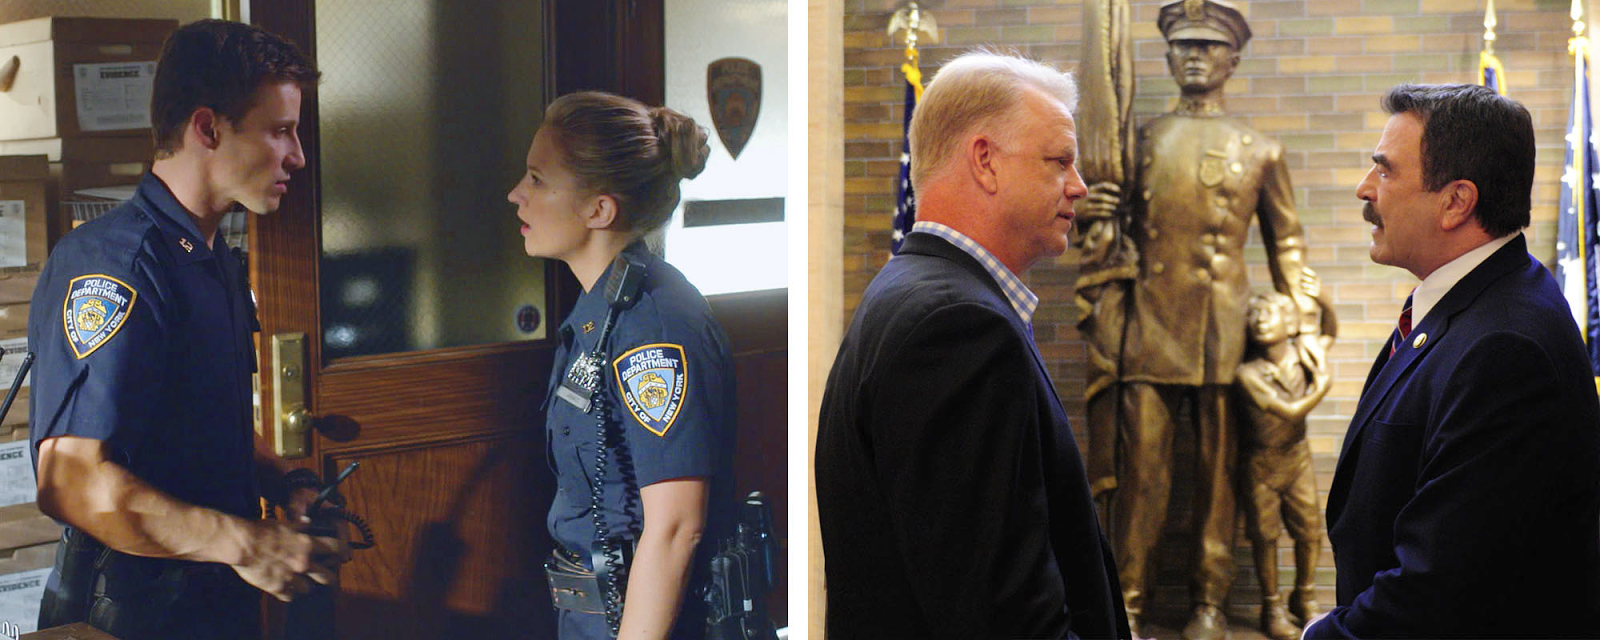 Blue Bloods - Episode 5.02 - Forgive and Forget - Press Release